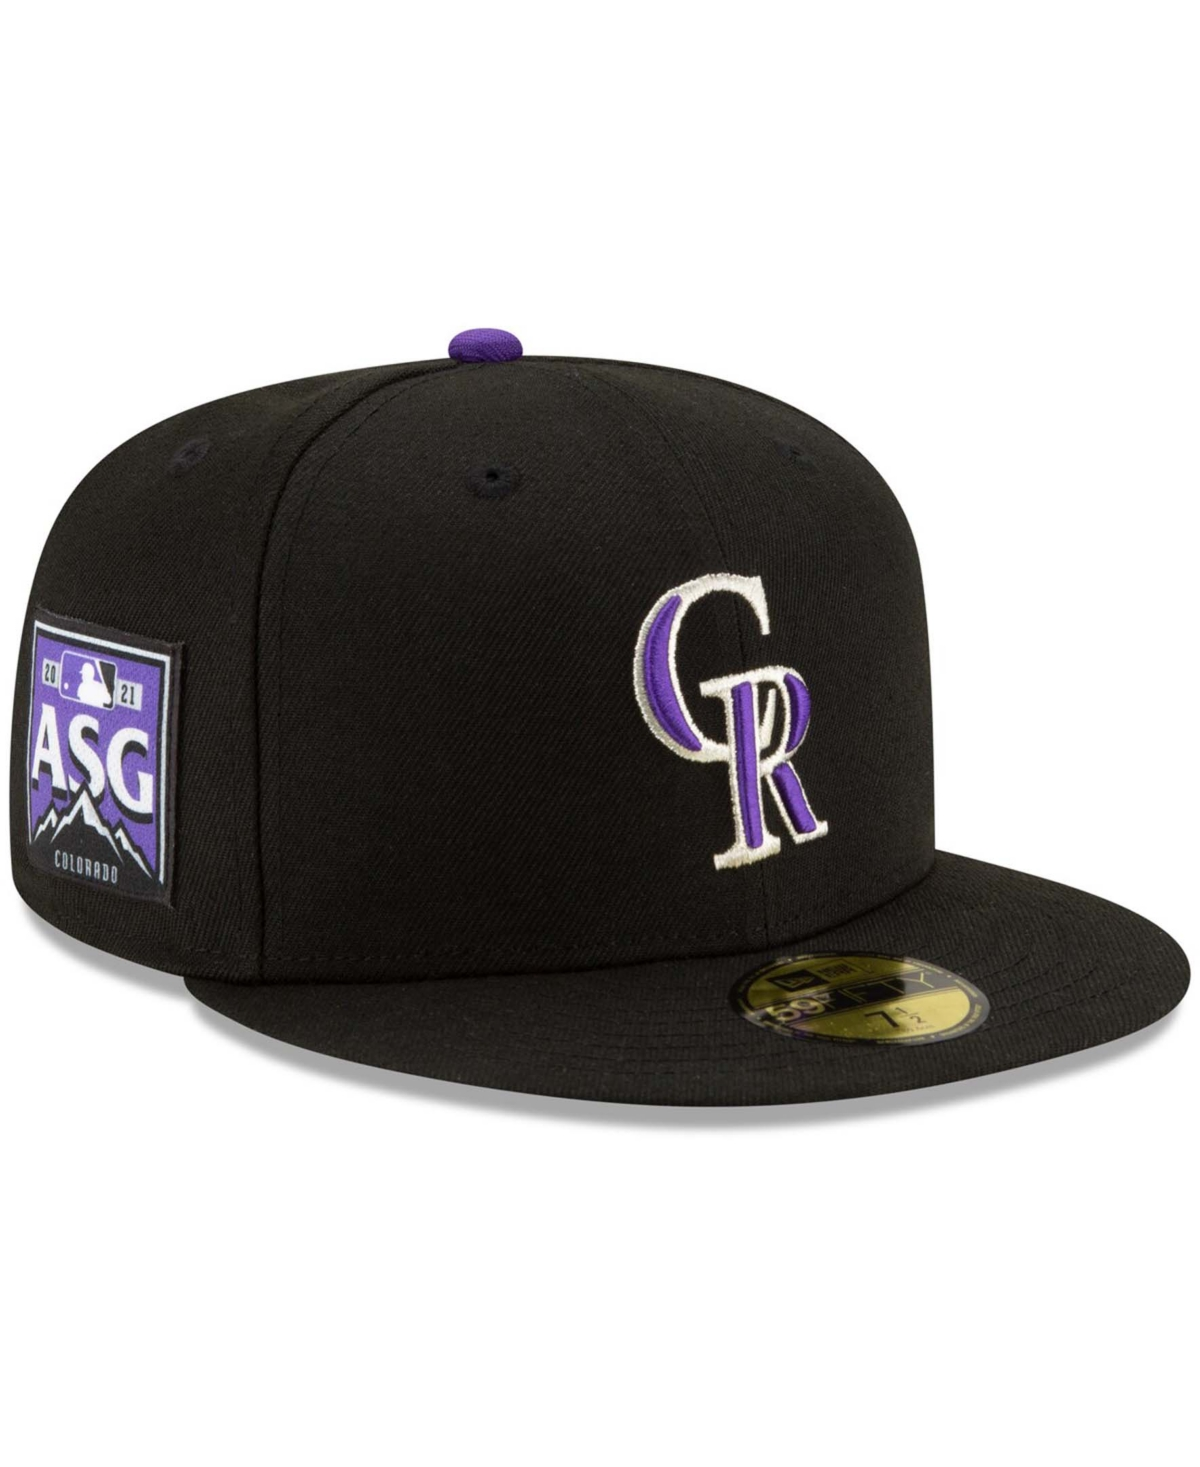 Men's Black Colorado Rockies 2021 Mlb All-Star Game Authentic Collection On-Field 59FIFTY Fitted Hat